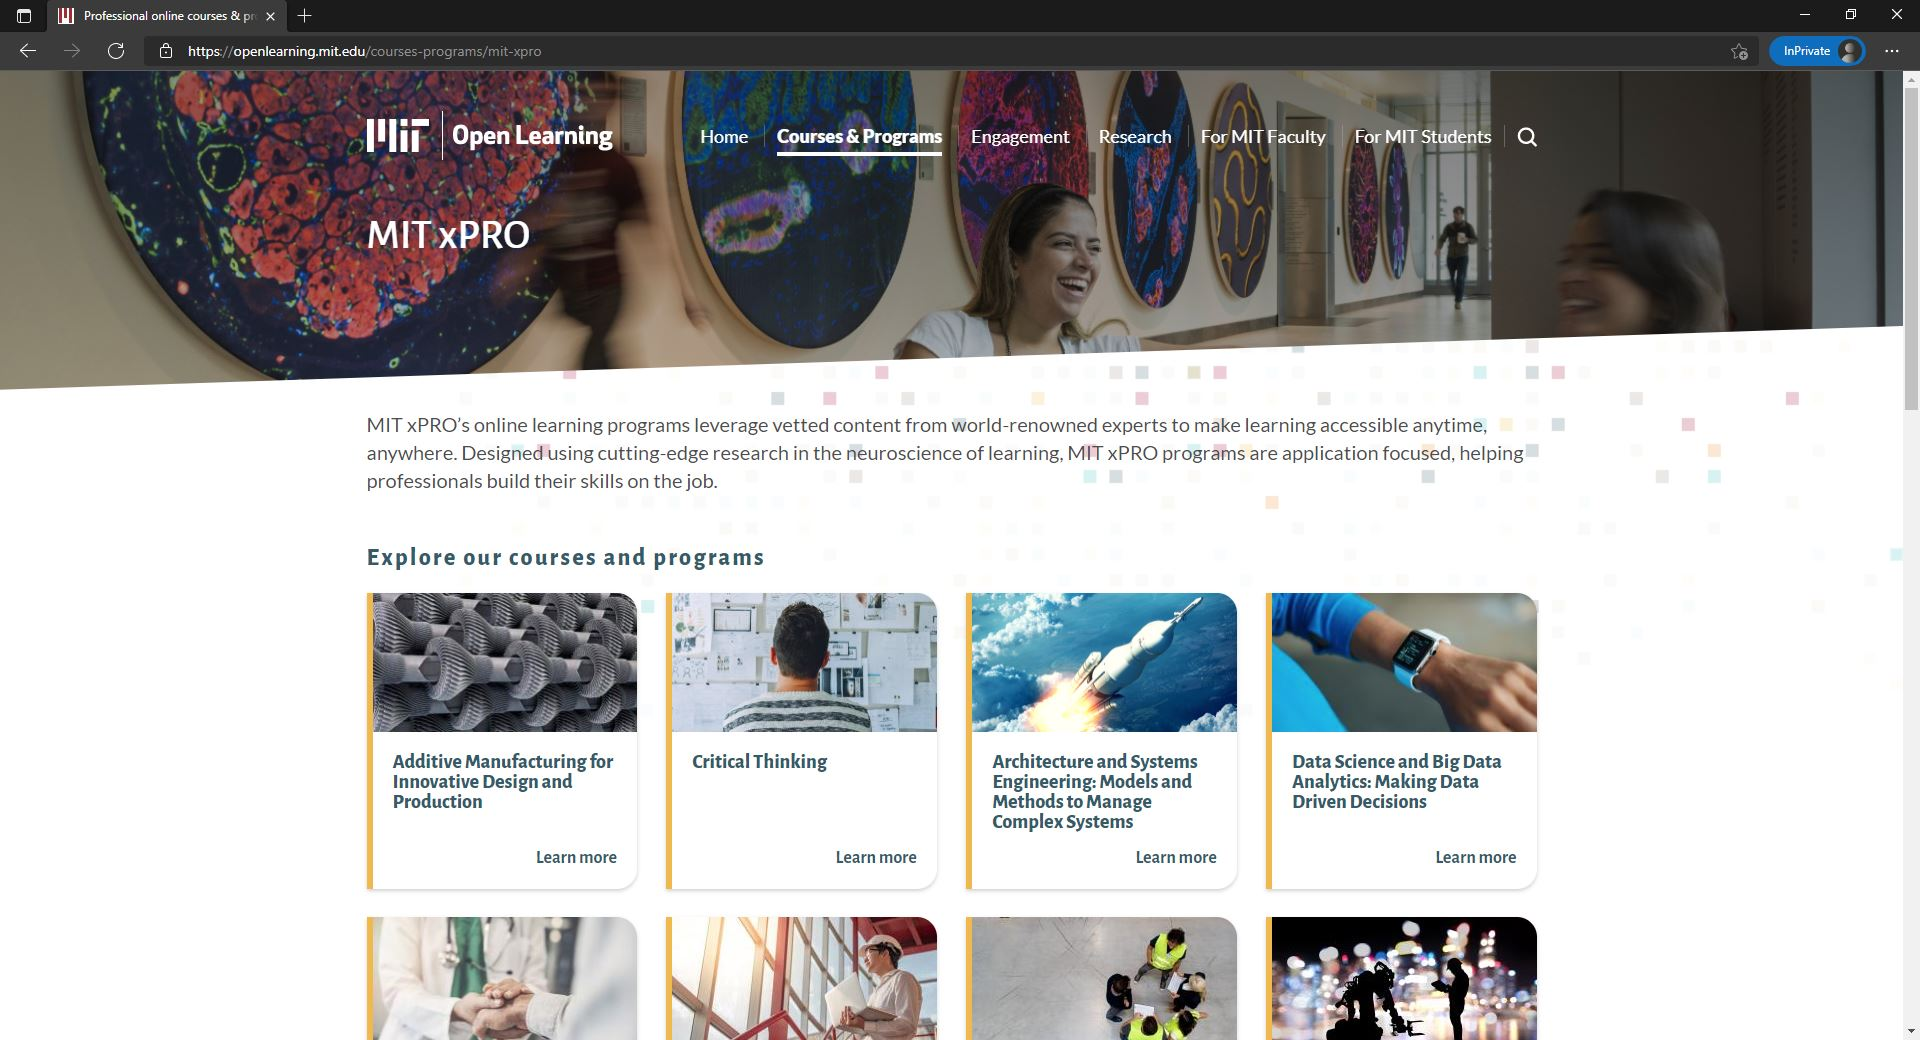 MIT Open Learning main website and course listing